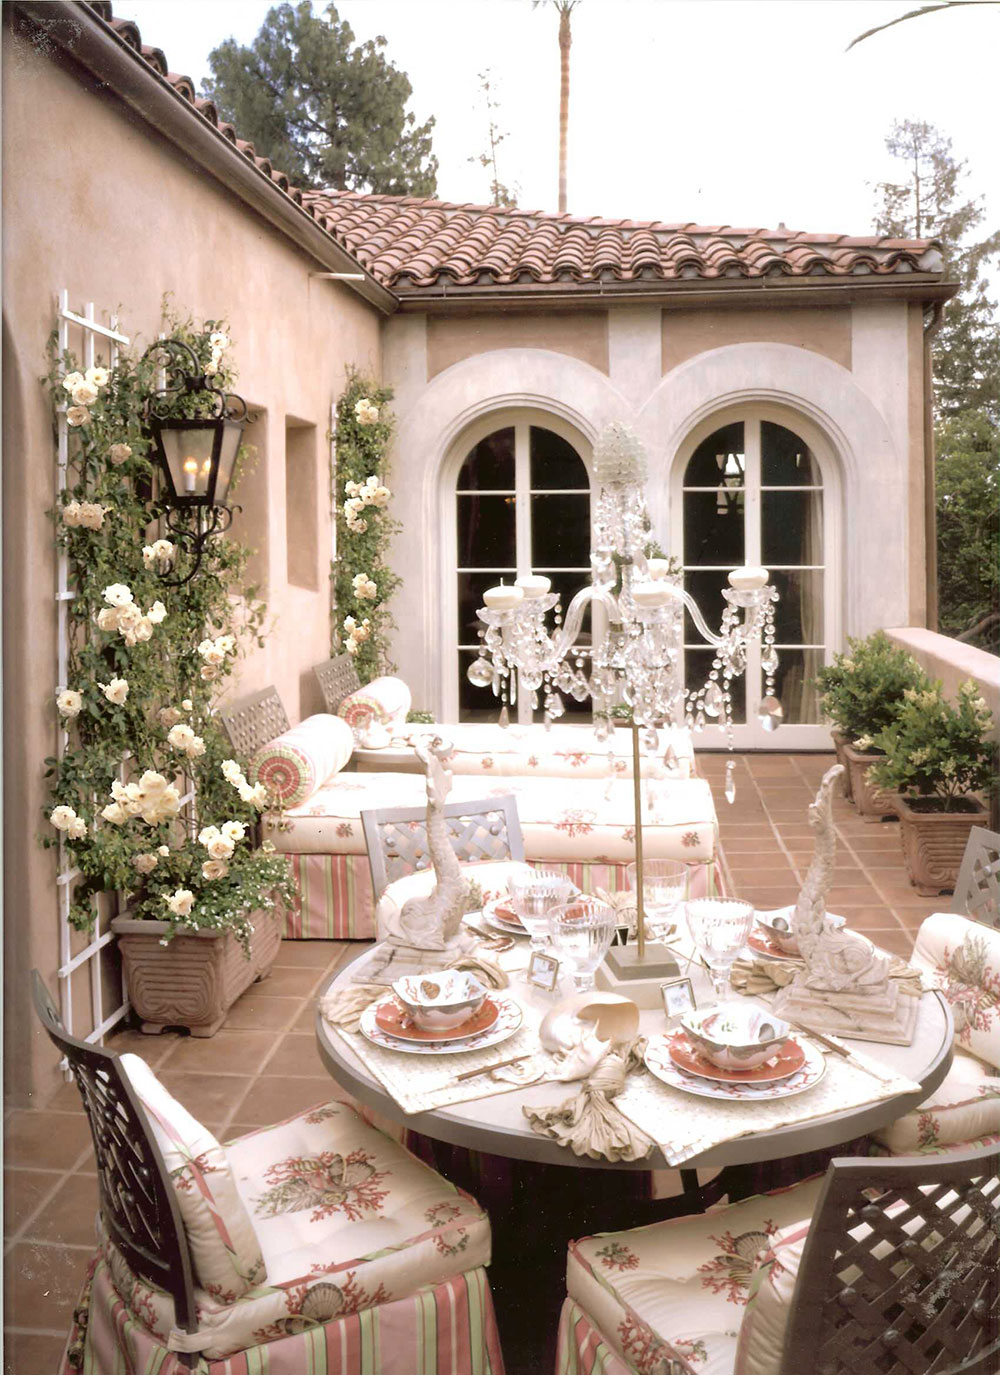 Ideas for creating an outdoor living space 12 ideas for creating an outdoor living space